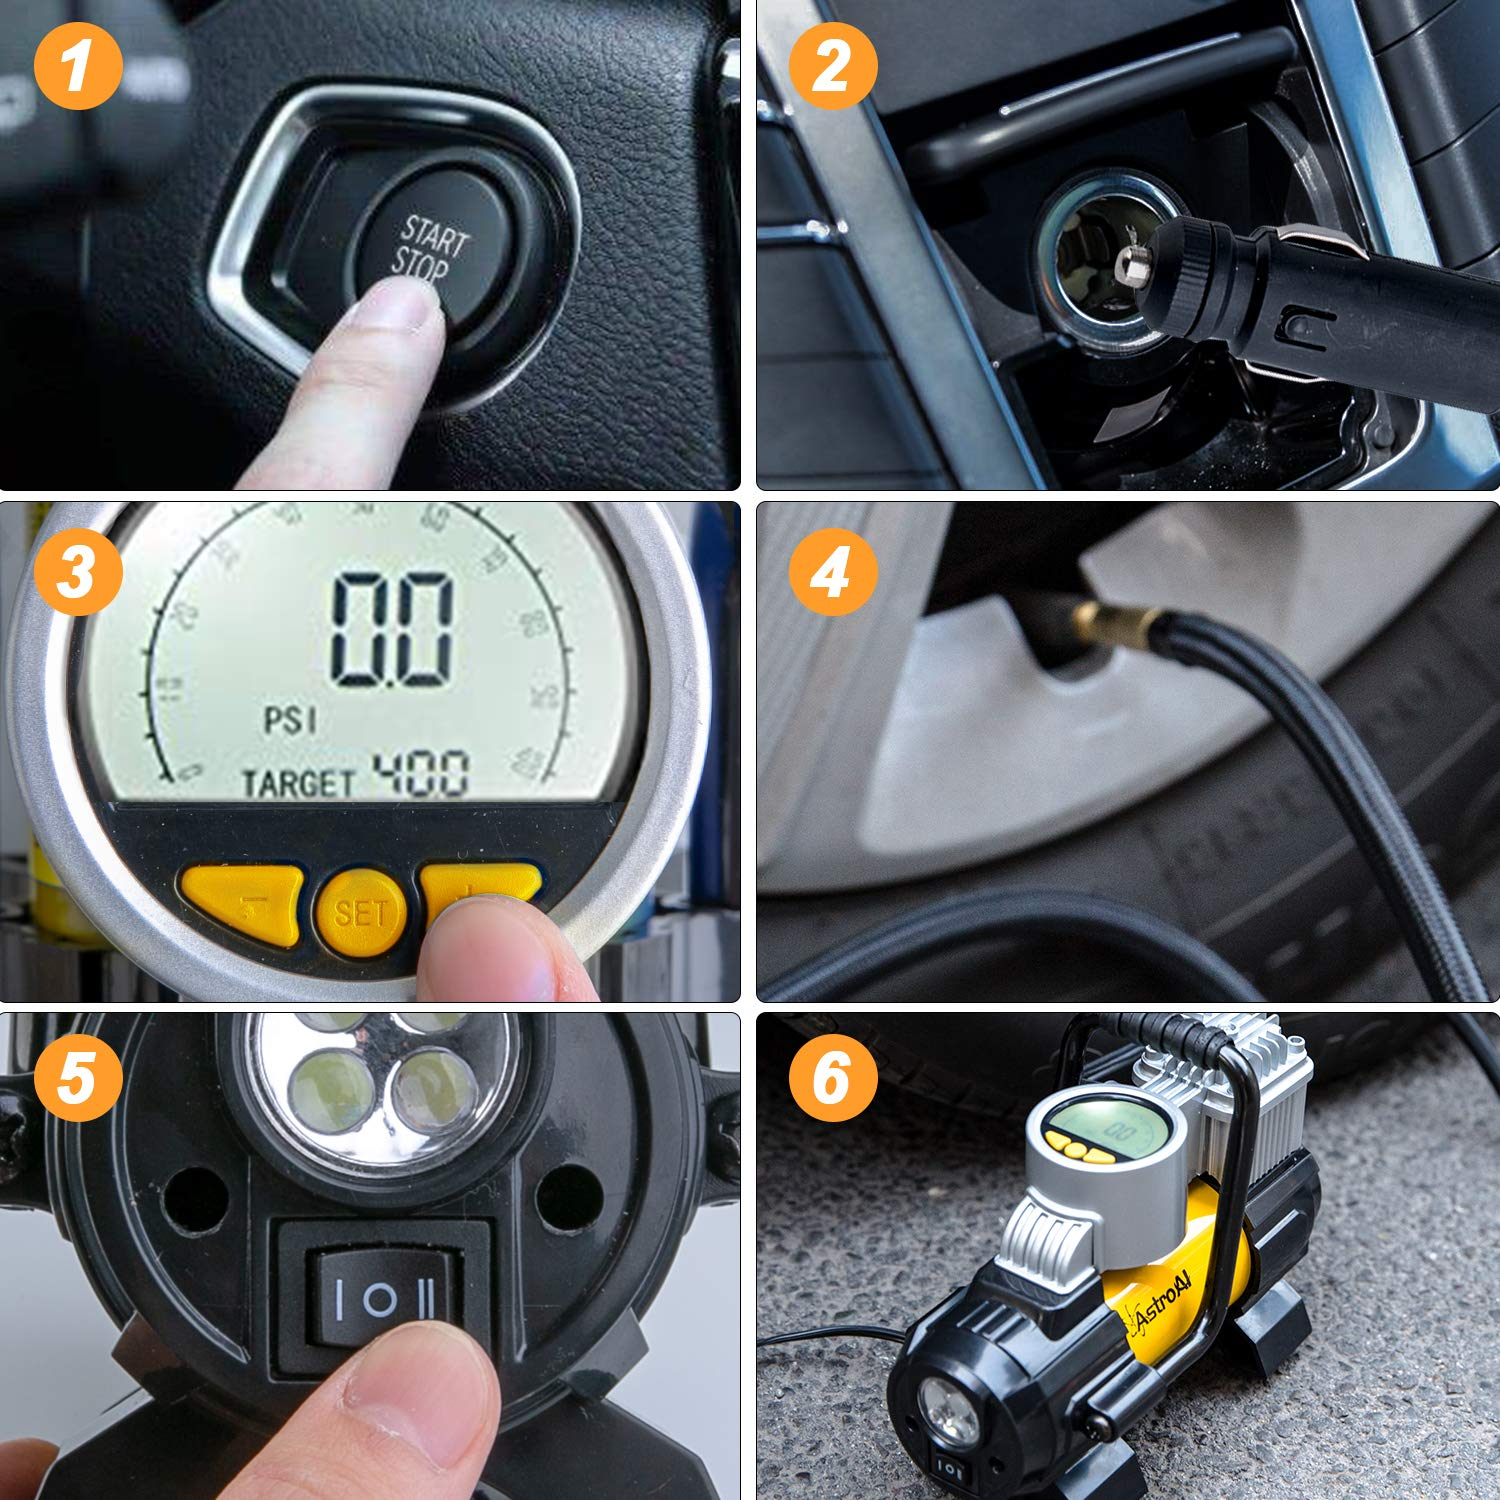 Air Compressor AstroAI Digital Car Air Pump 100 PSI 12V Electric Portable Digital Tire Inflator with Extra Nozzle Adaptors and Fuse for Car Bike Tires and Other Automobiles